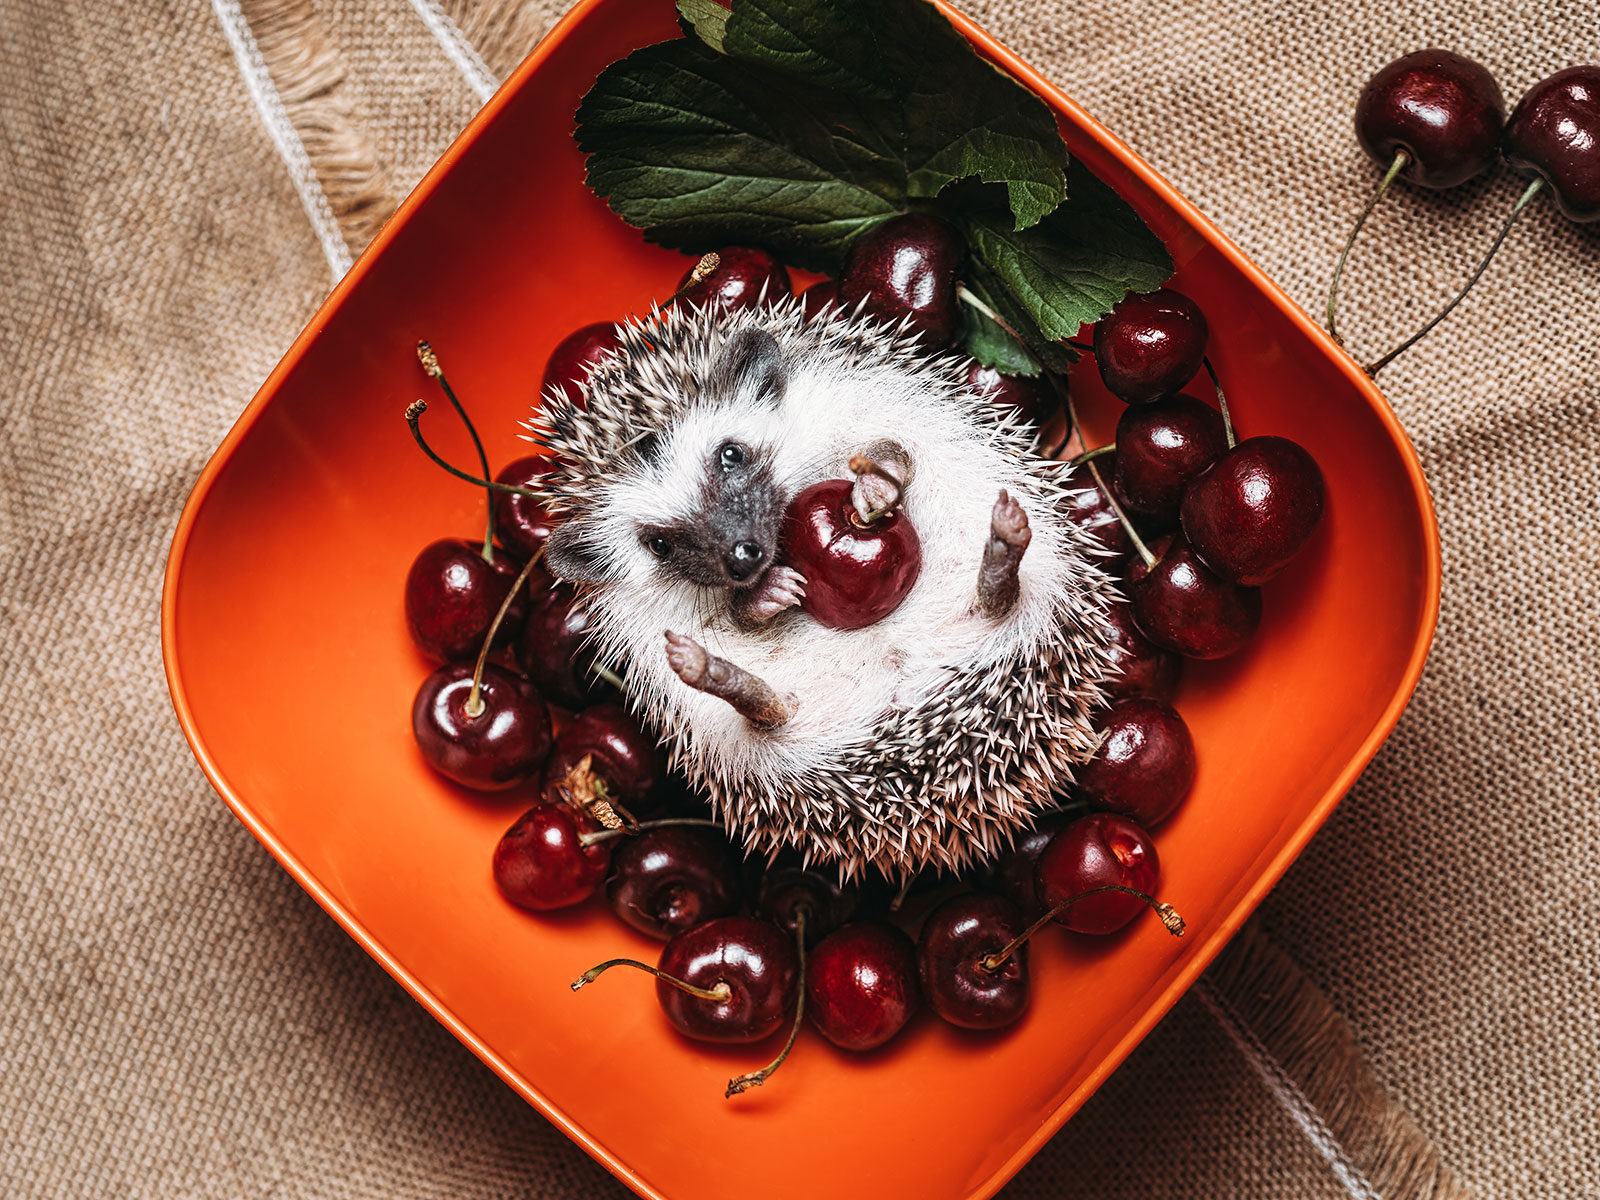 8 Photos That Prove Hedgehogs and Food Are the Winningest Combo